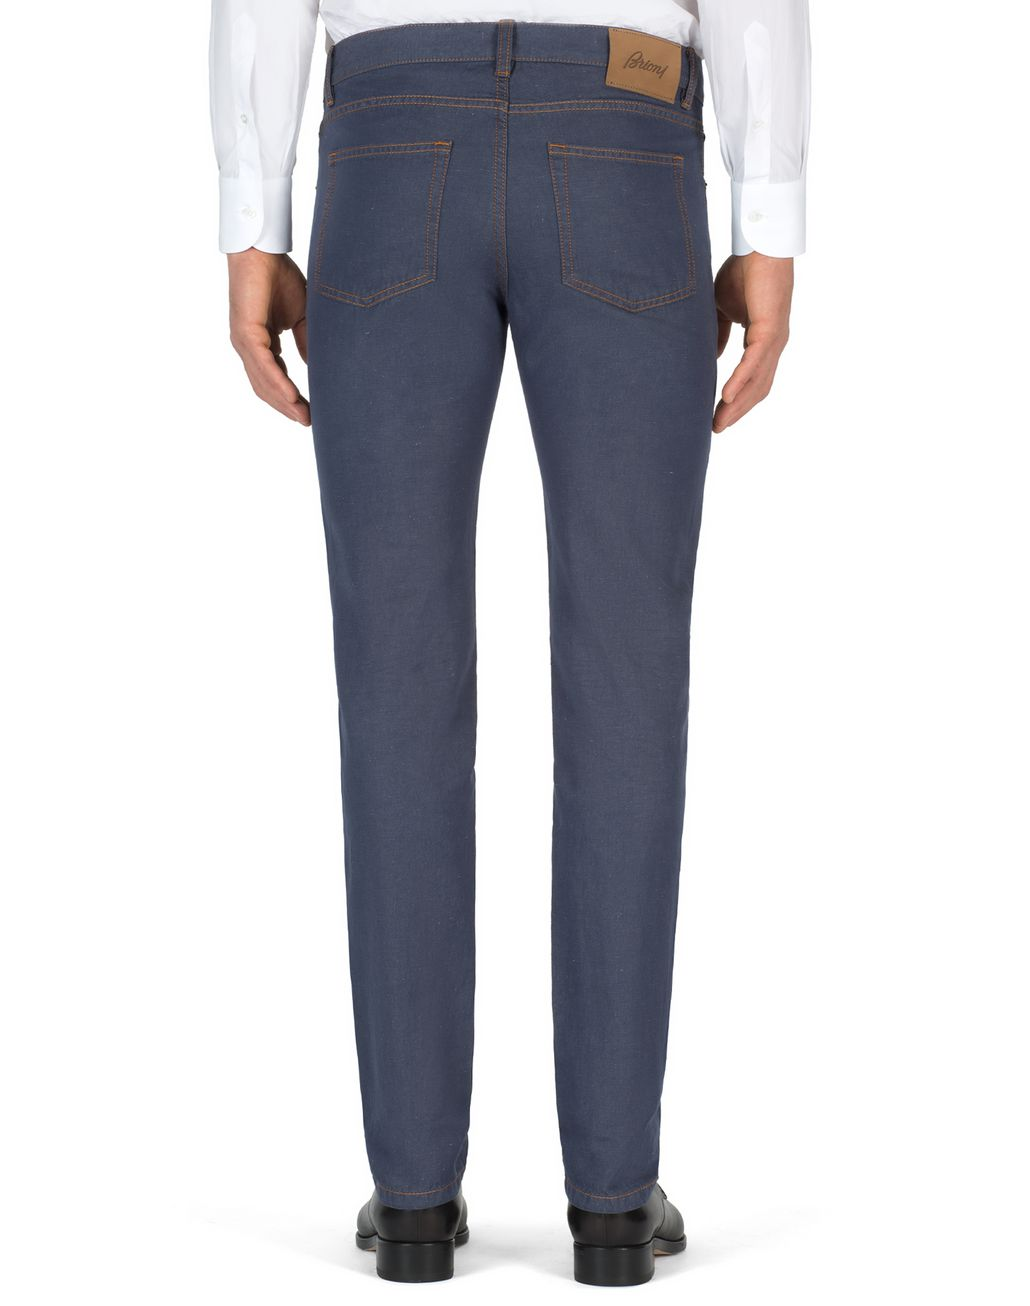 BRIONI Bluette Slim Fit Cotton and Linen Aneto Jeans  Denim Man d